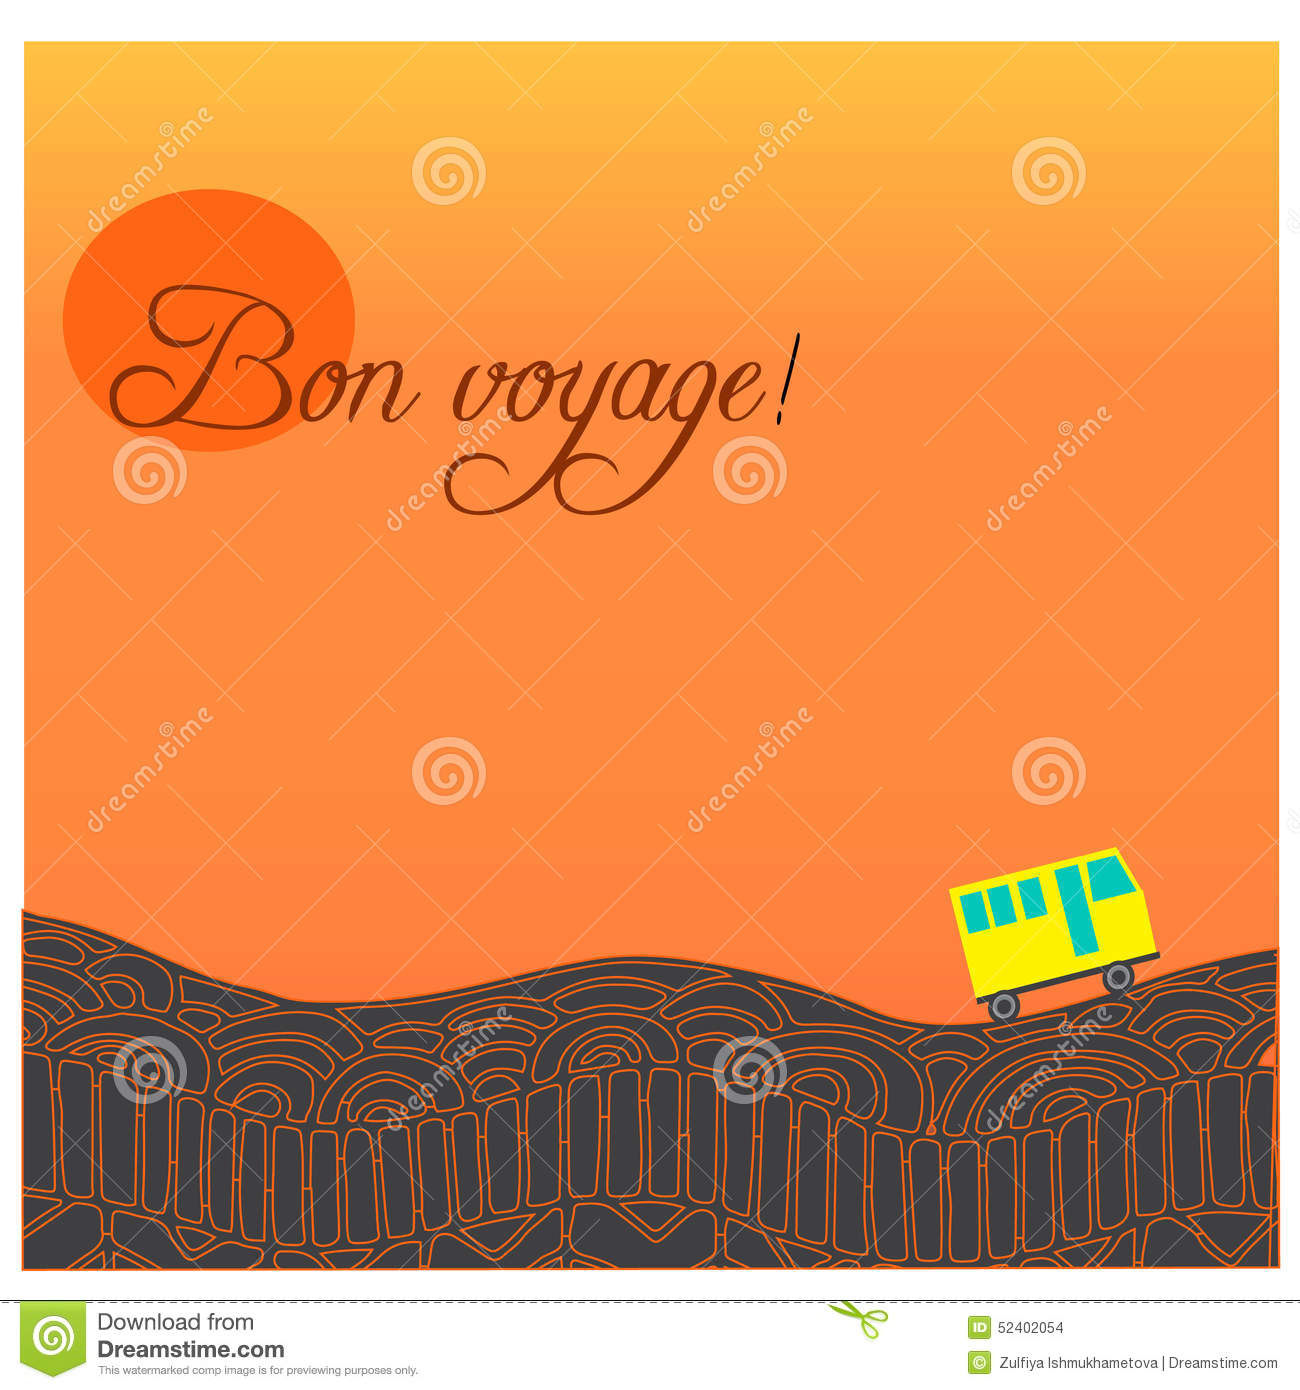 Card With Road Bus And Text Happy Journey In French Bon Voyage